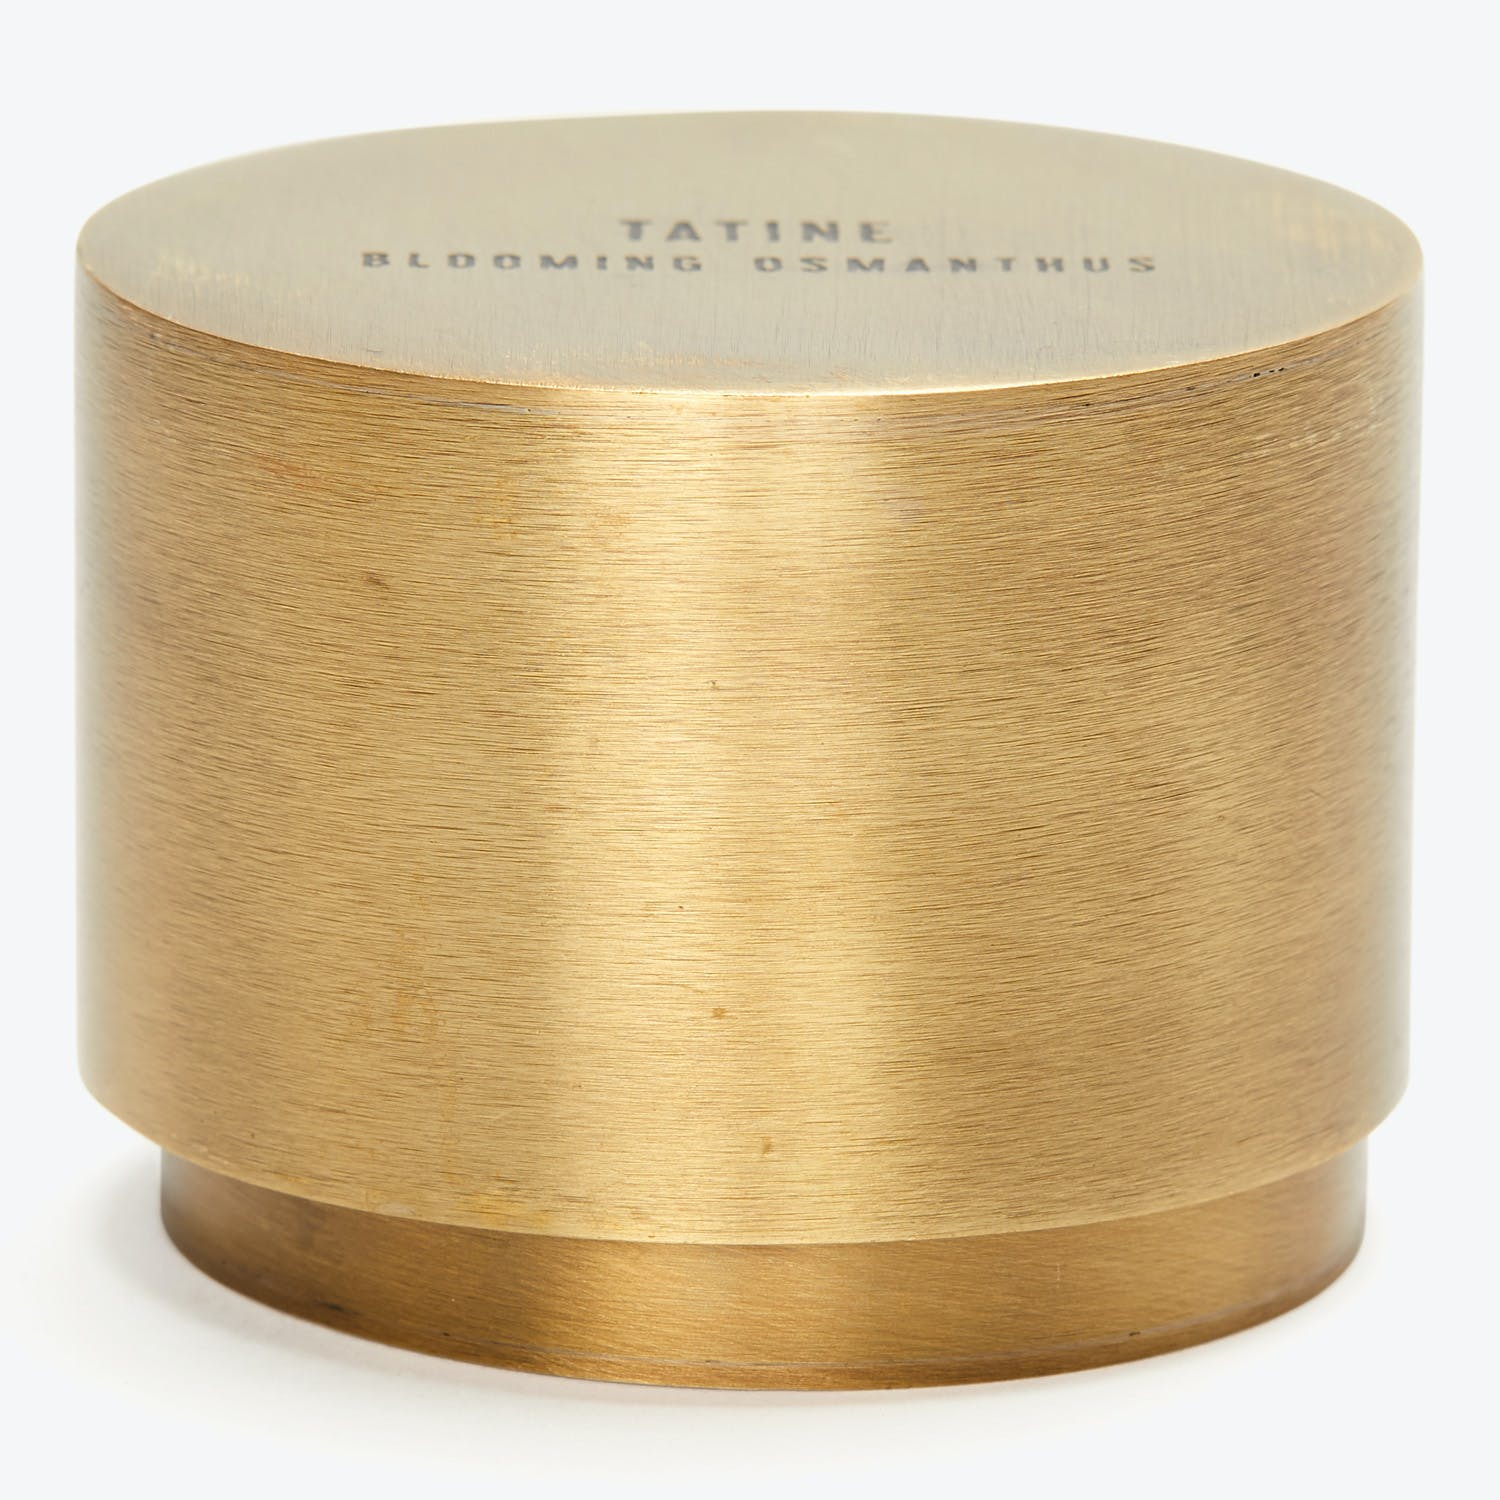 Tatine Natural Brass Collection Blooming Osmanthus Candle